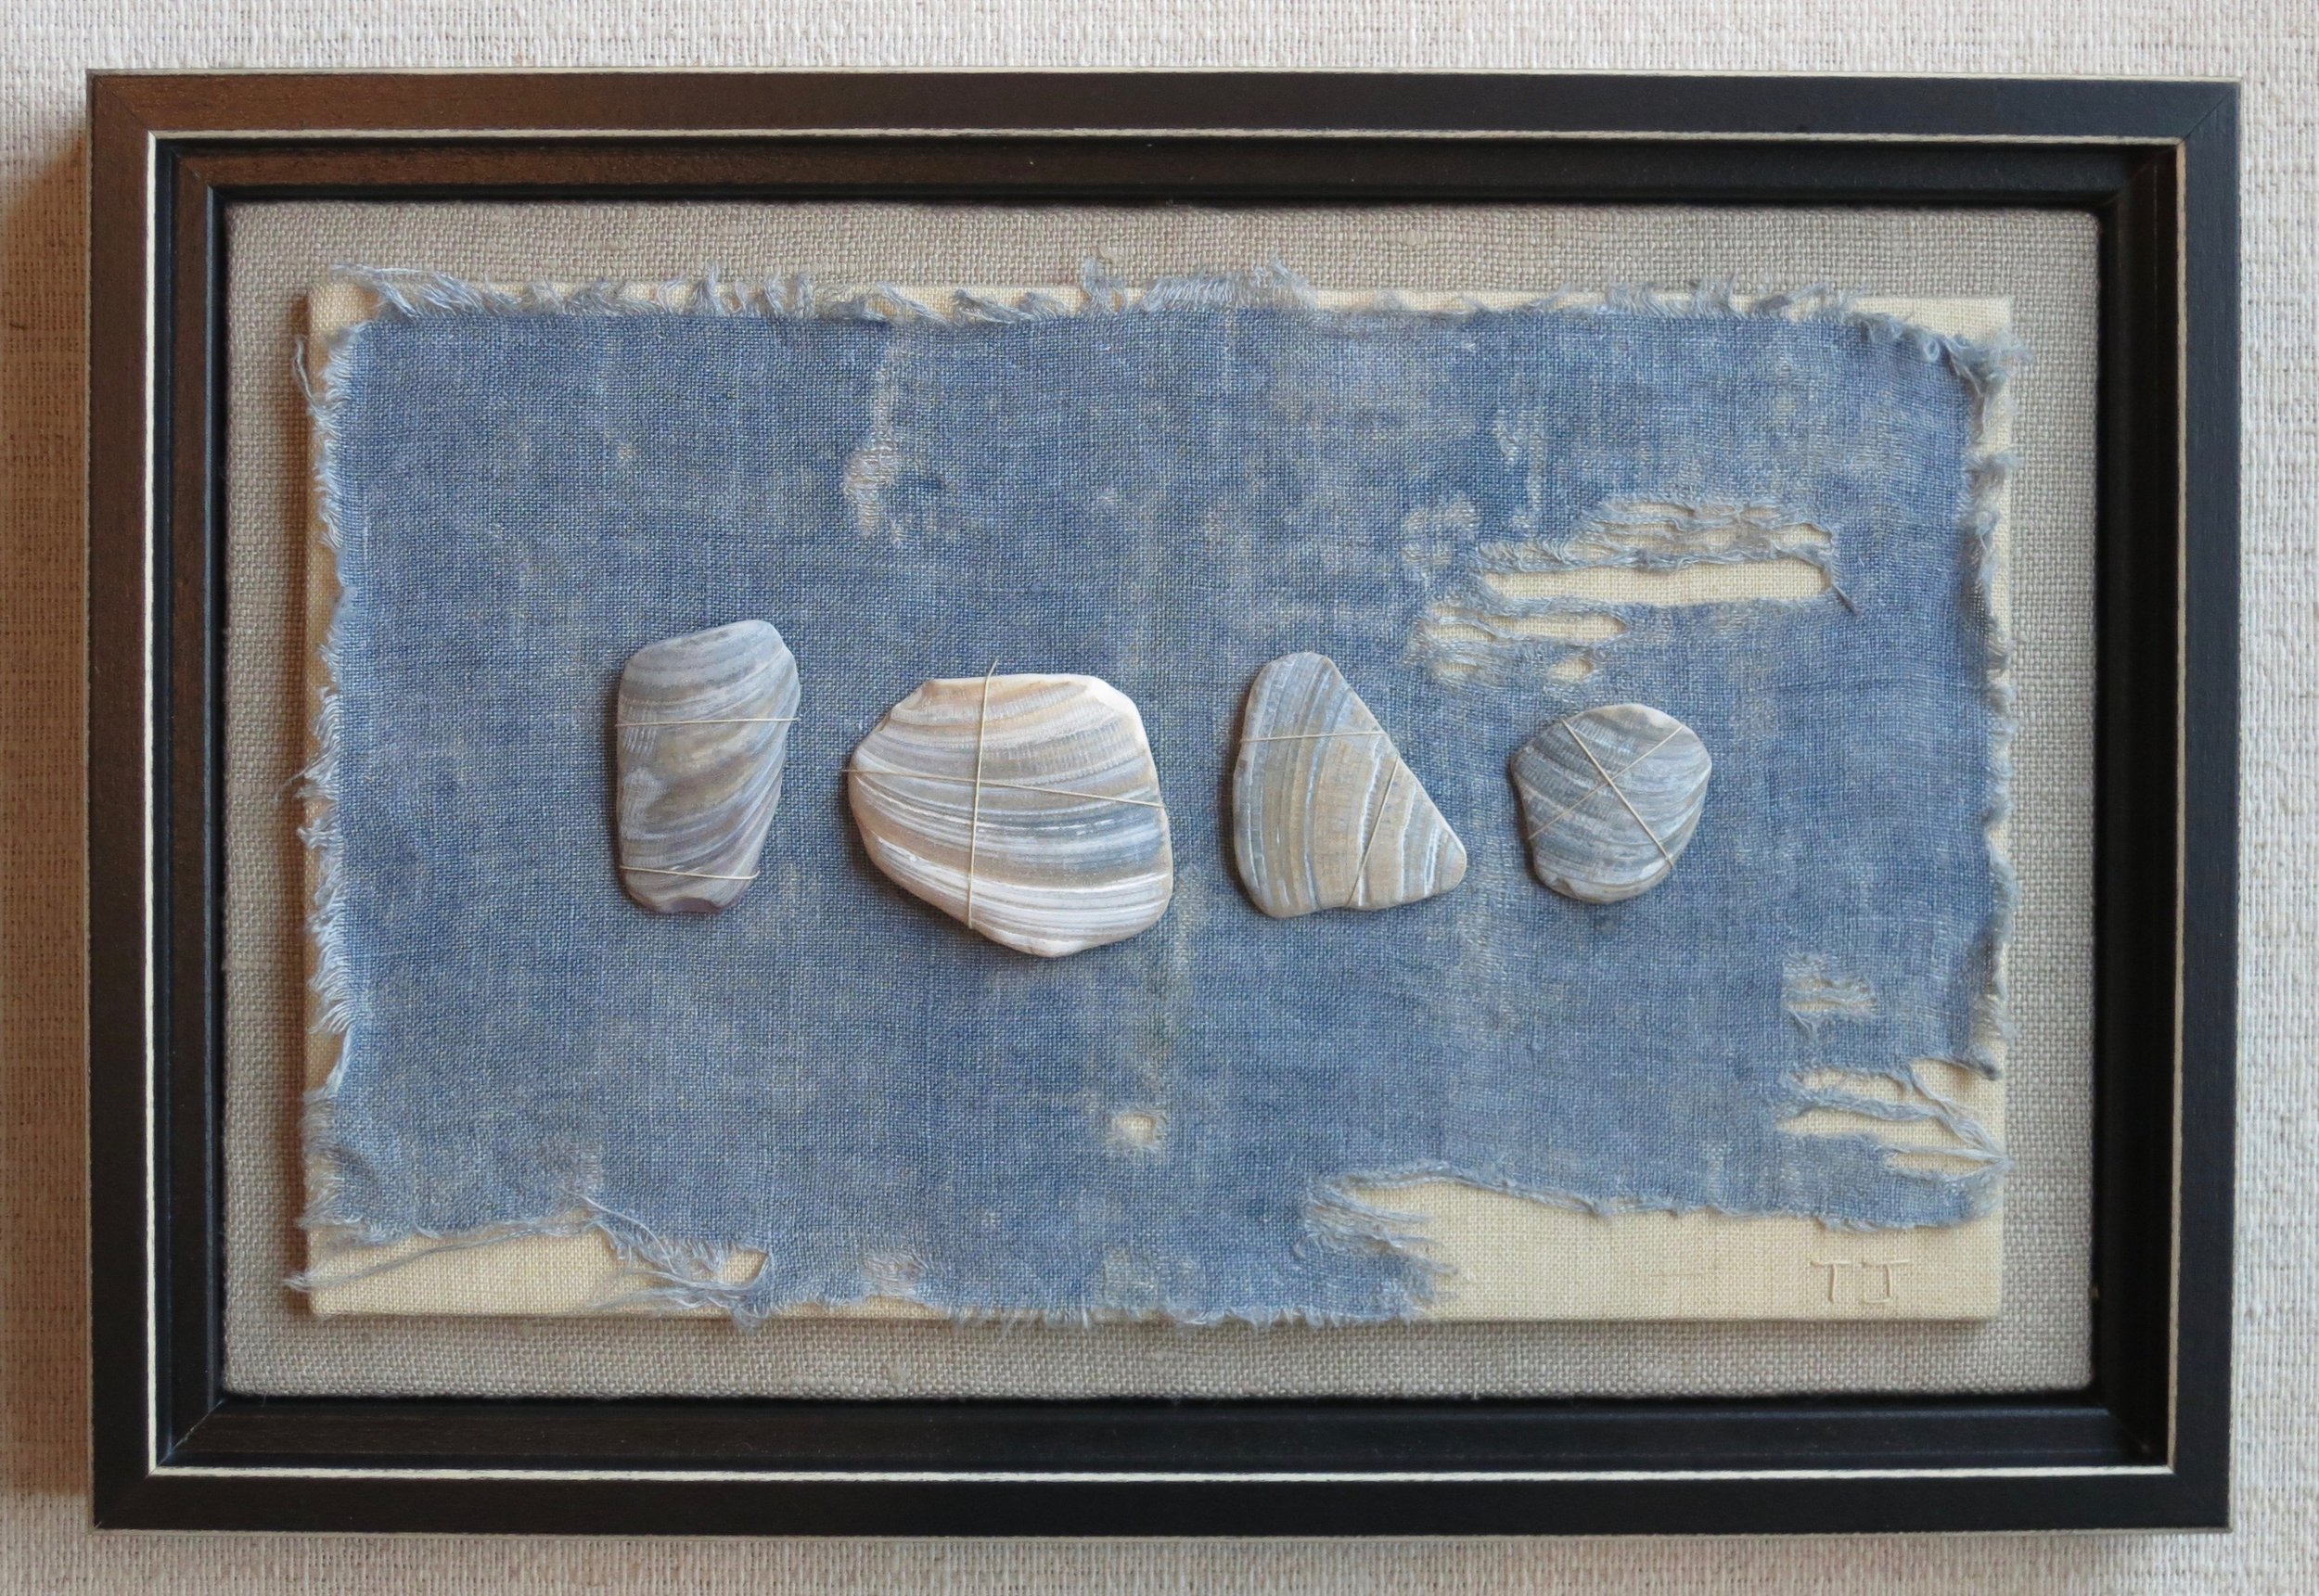 """Shell shards   2014 8.5"""" x 12.5"""" Shards hand sewn on faded blue fabric mounted on linen."""